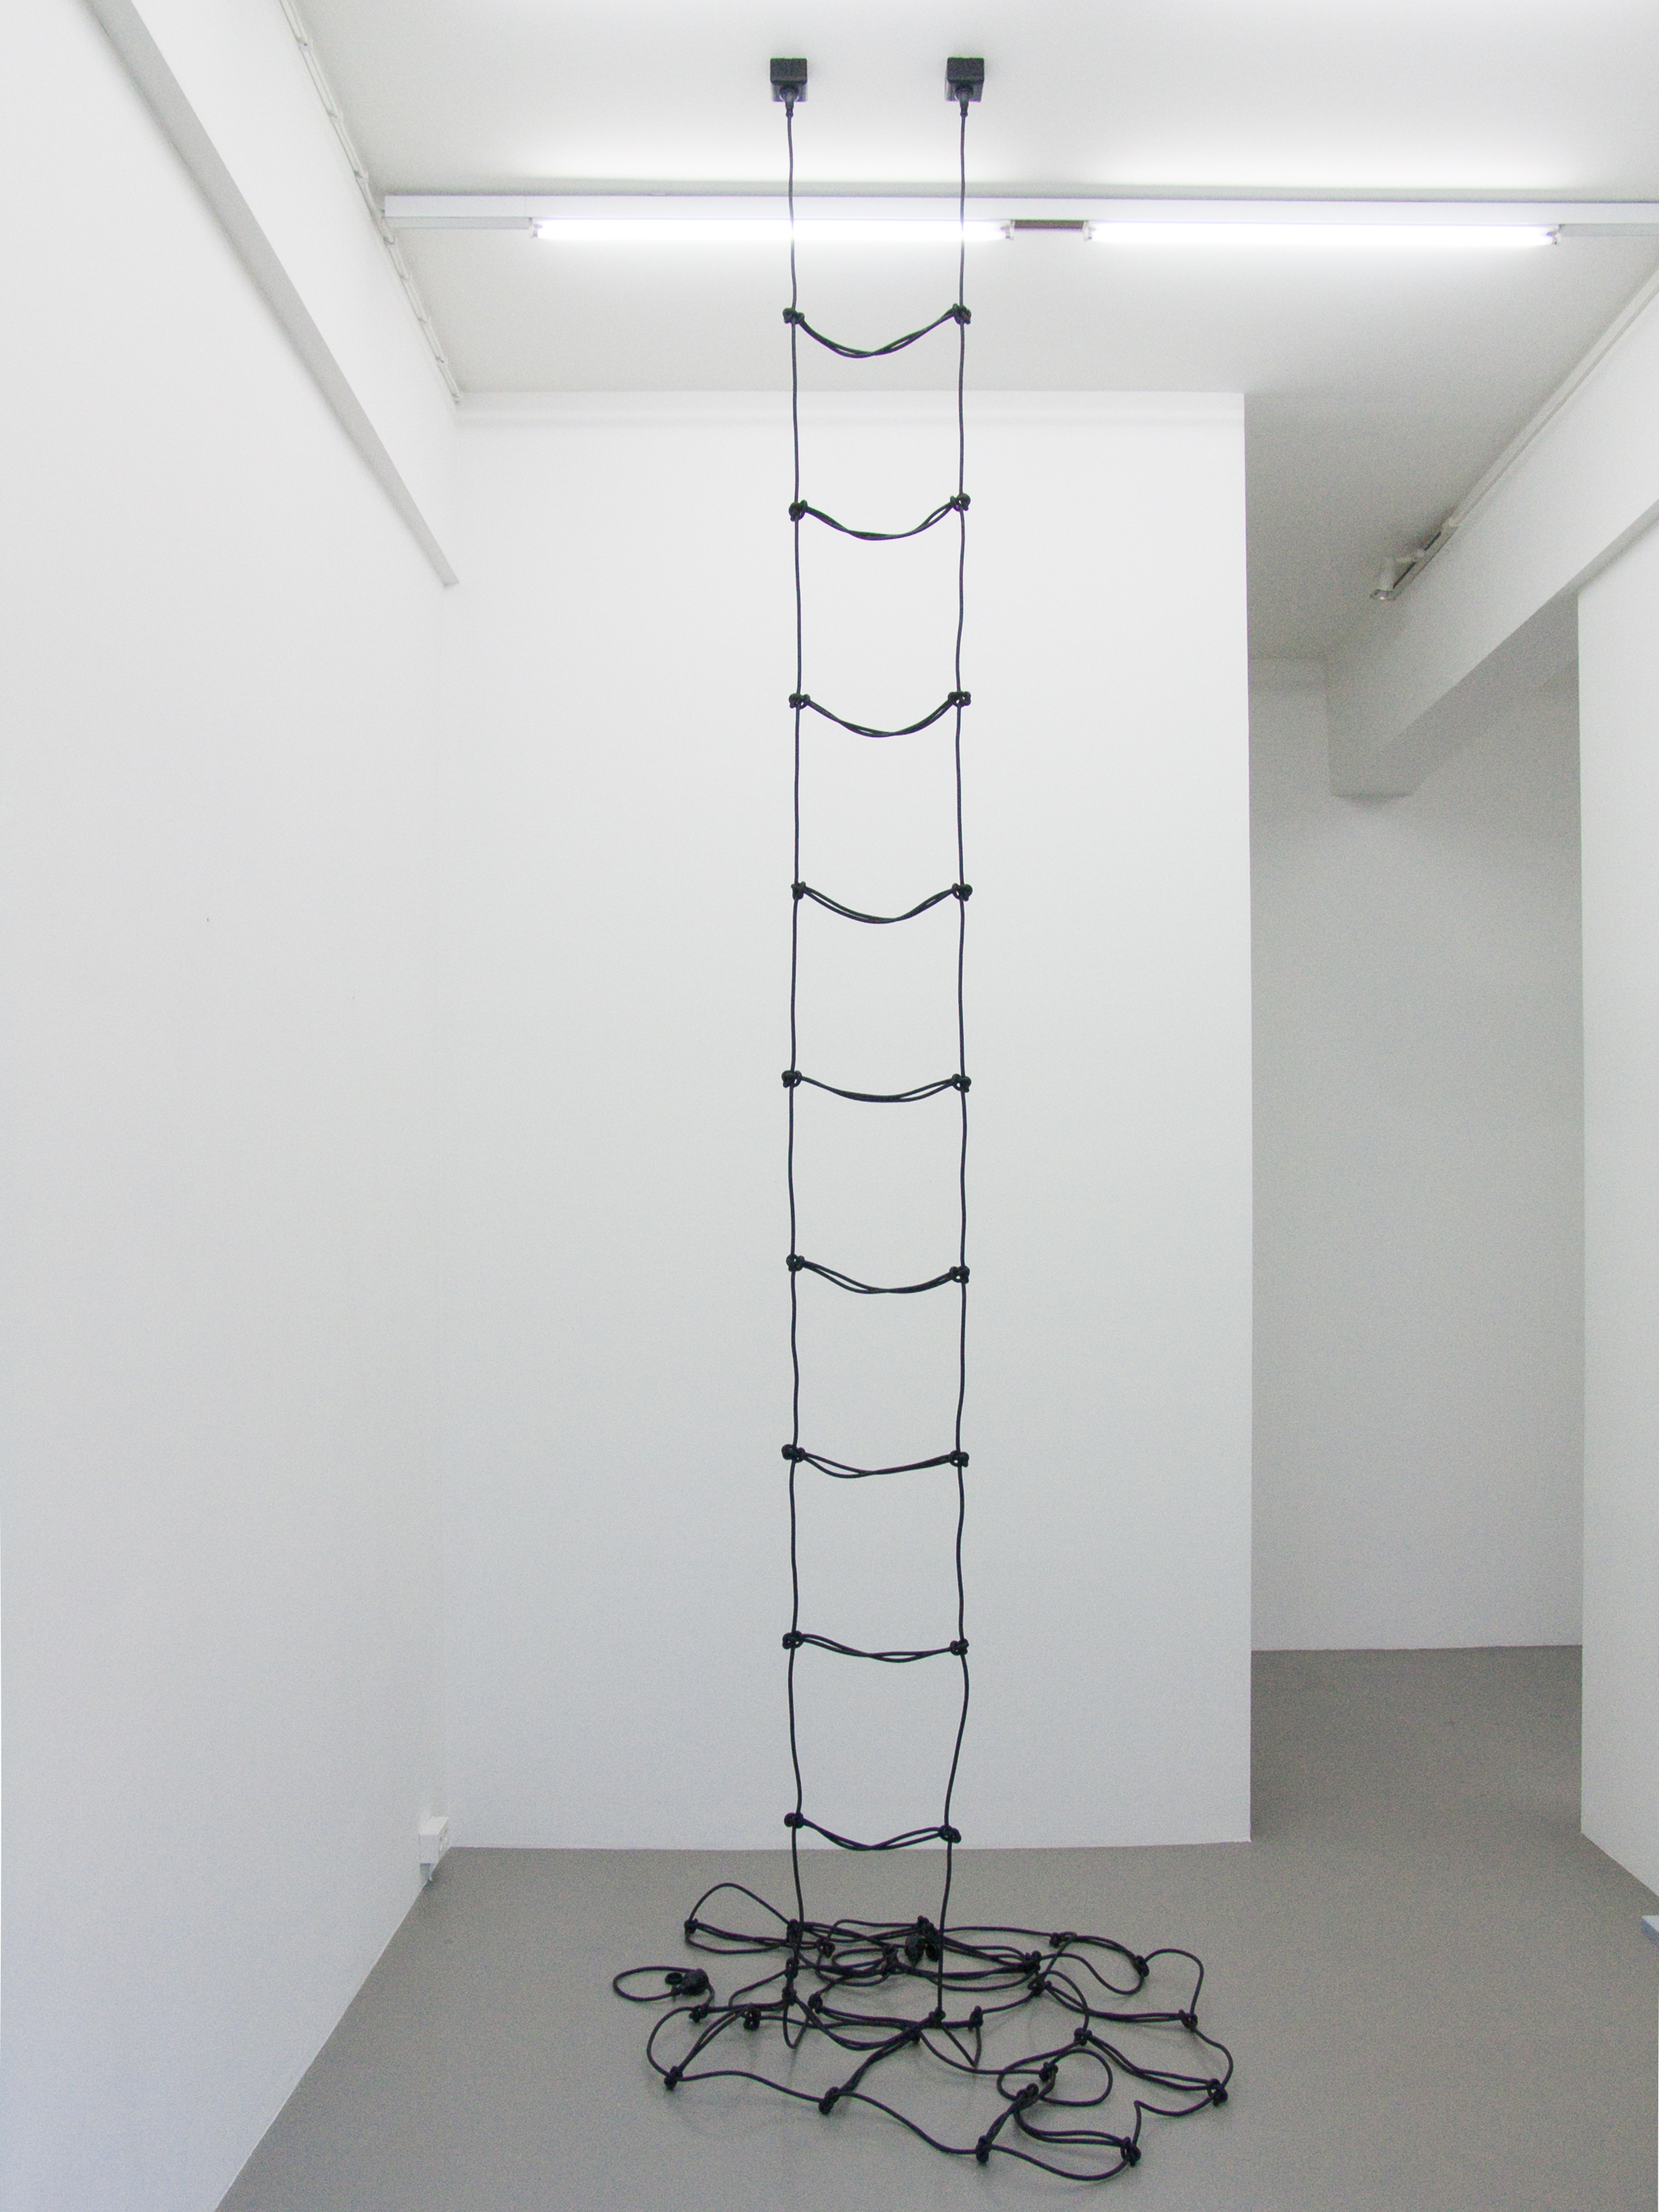 Artwork by Erik Andersen - Leiter 2010 - Black sculpture - Dimension variable - Installation View at Charim Ungar Contemporary